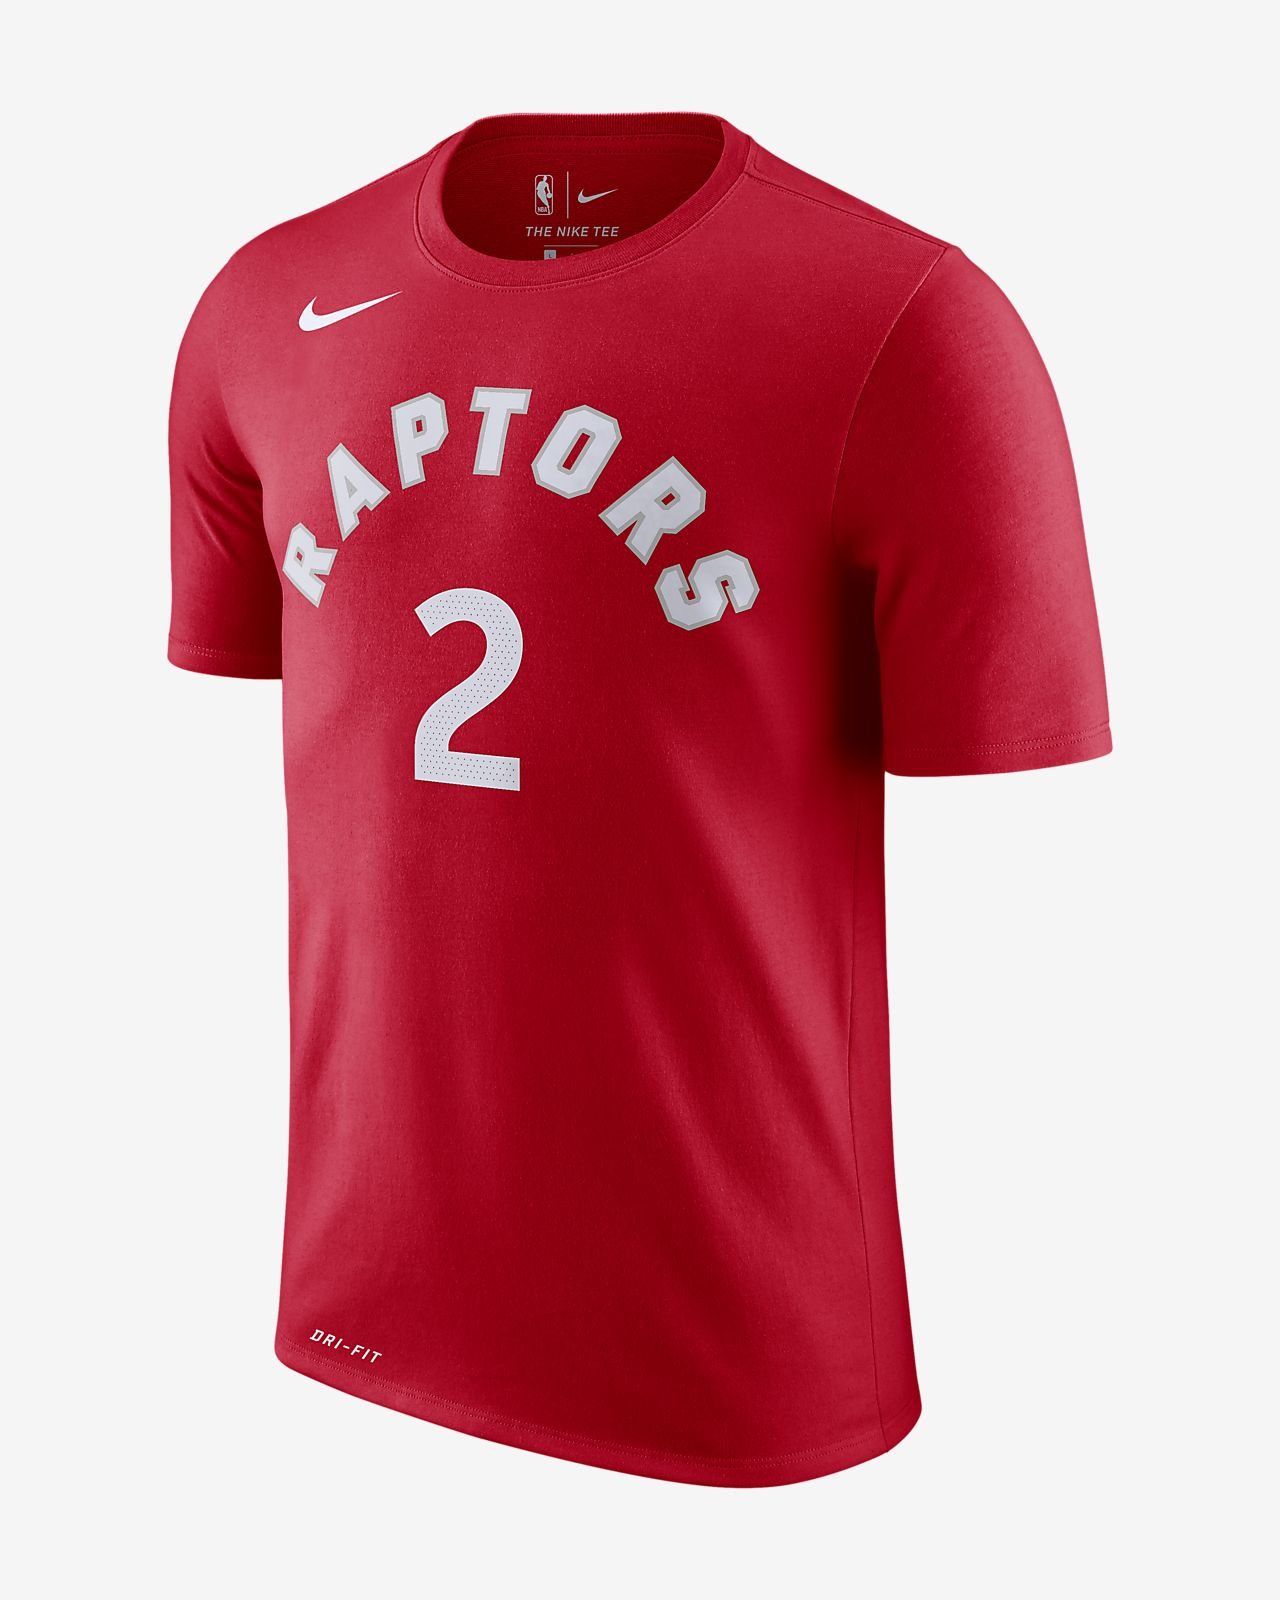 super cute 8668c a1f95 Kawhi Leonard Toronto Raptors Nike Dri-FIT Men's NBA T-Shirt